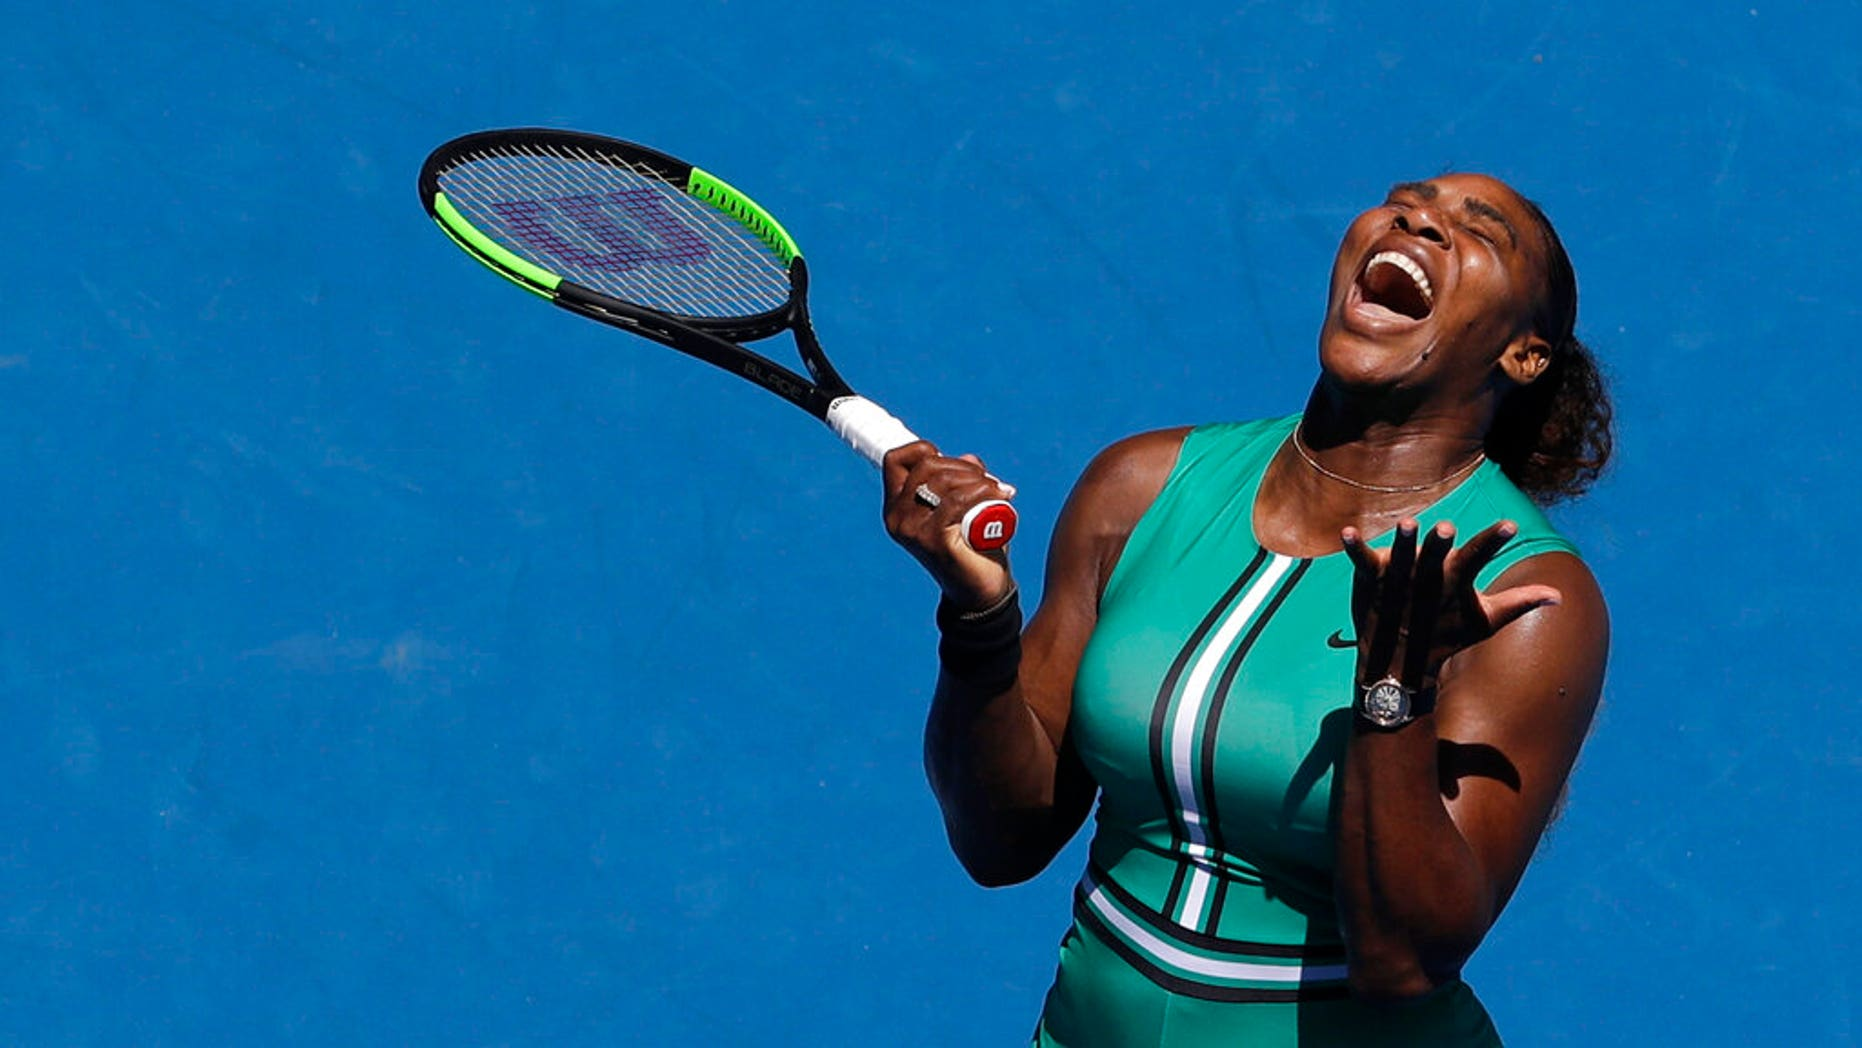 United States 'Serena Williams reacts after losing a point to Karolina Pliskova of the Czech Republic during their quarterfinal match at the Australian Open tennis.